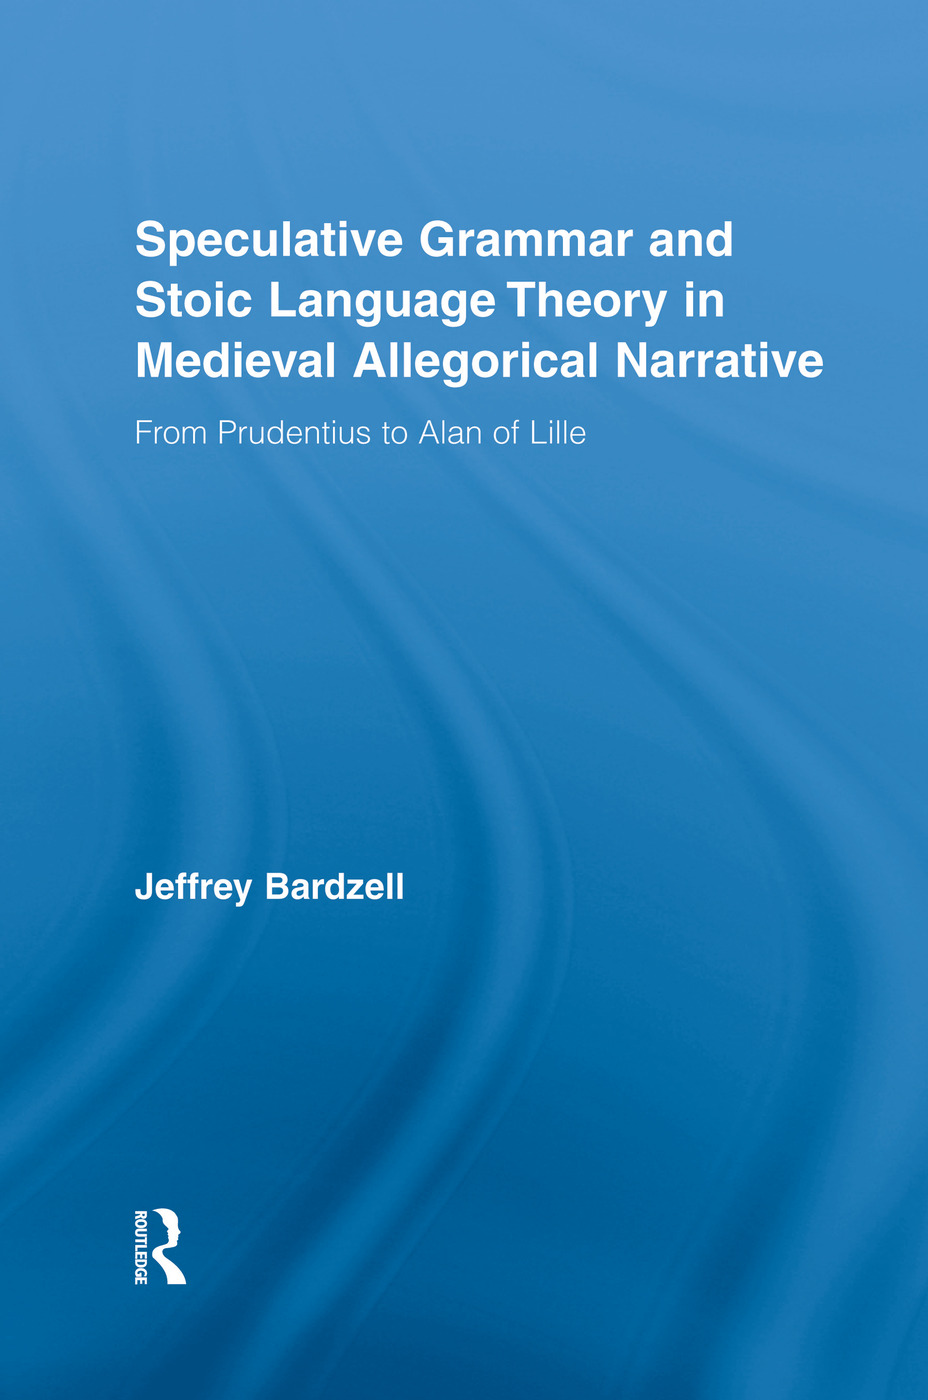 Speculative Grammar and Stoic Language Theory in Medieval Allegorical Narrative